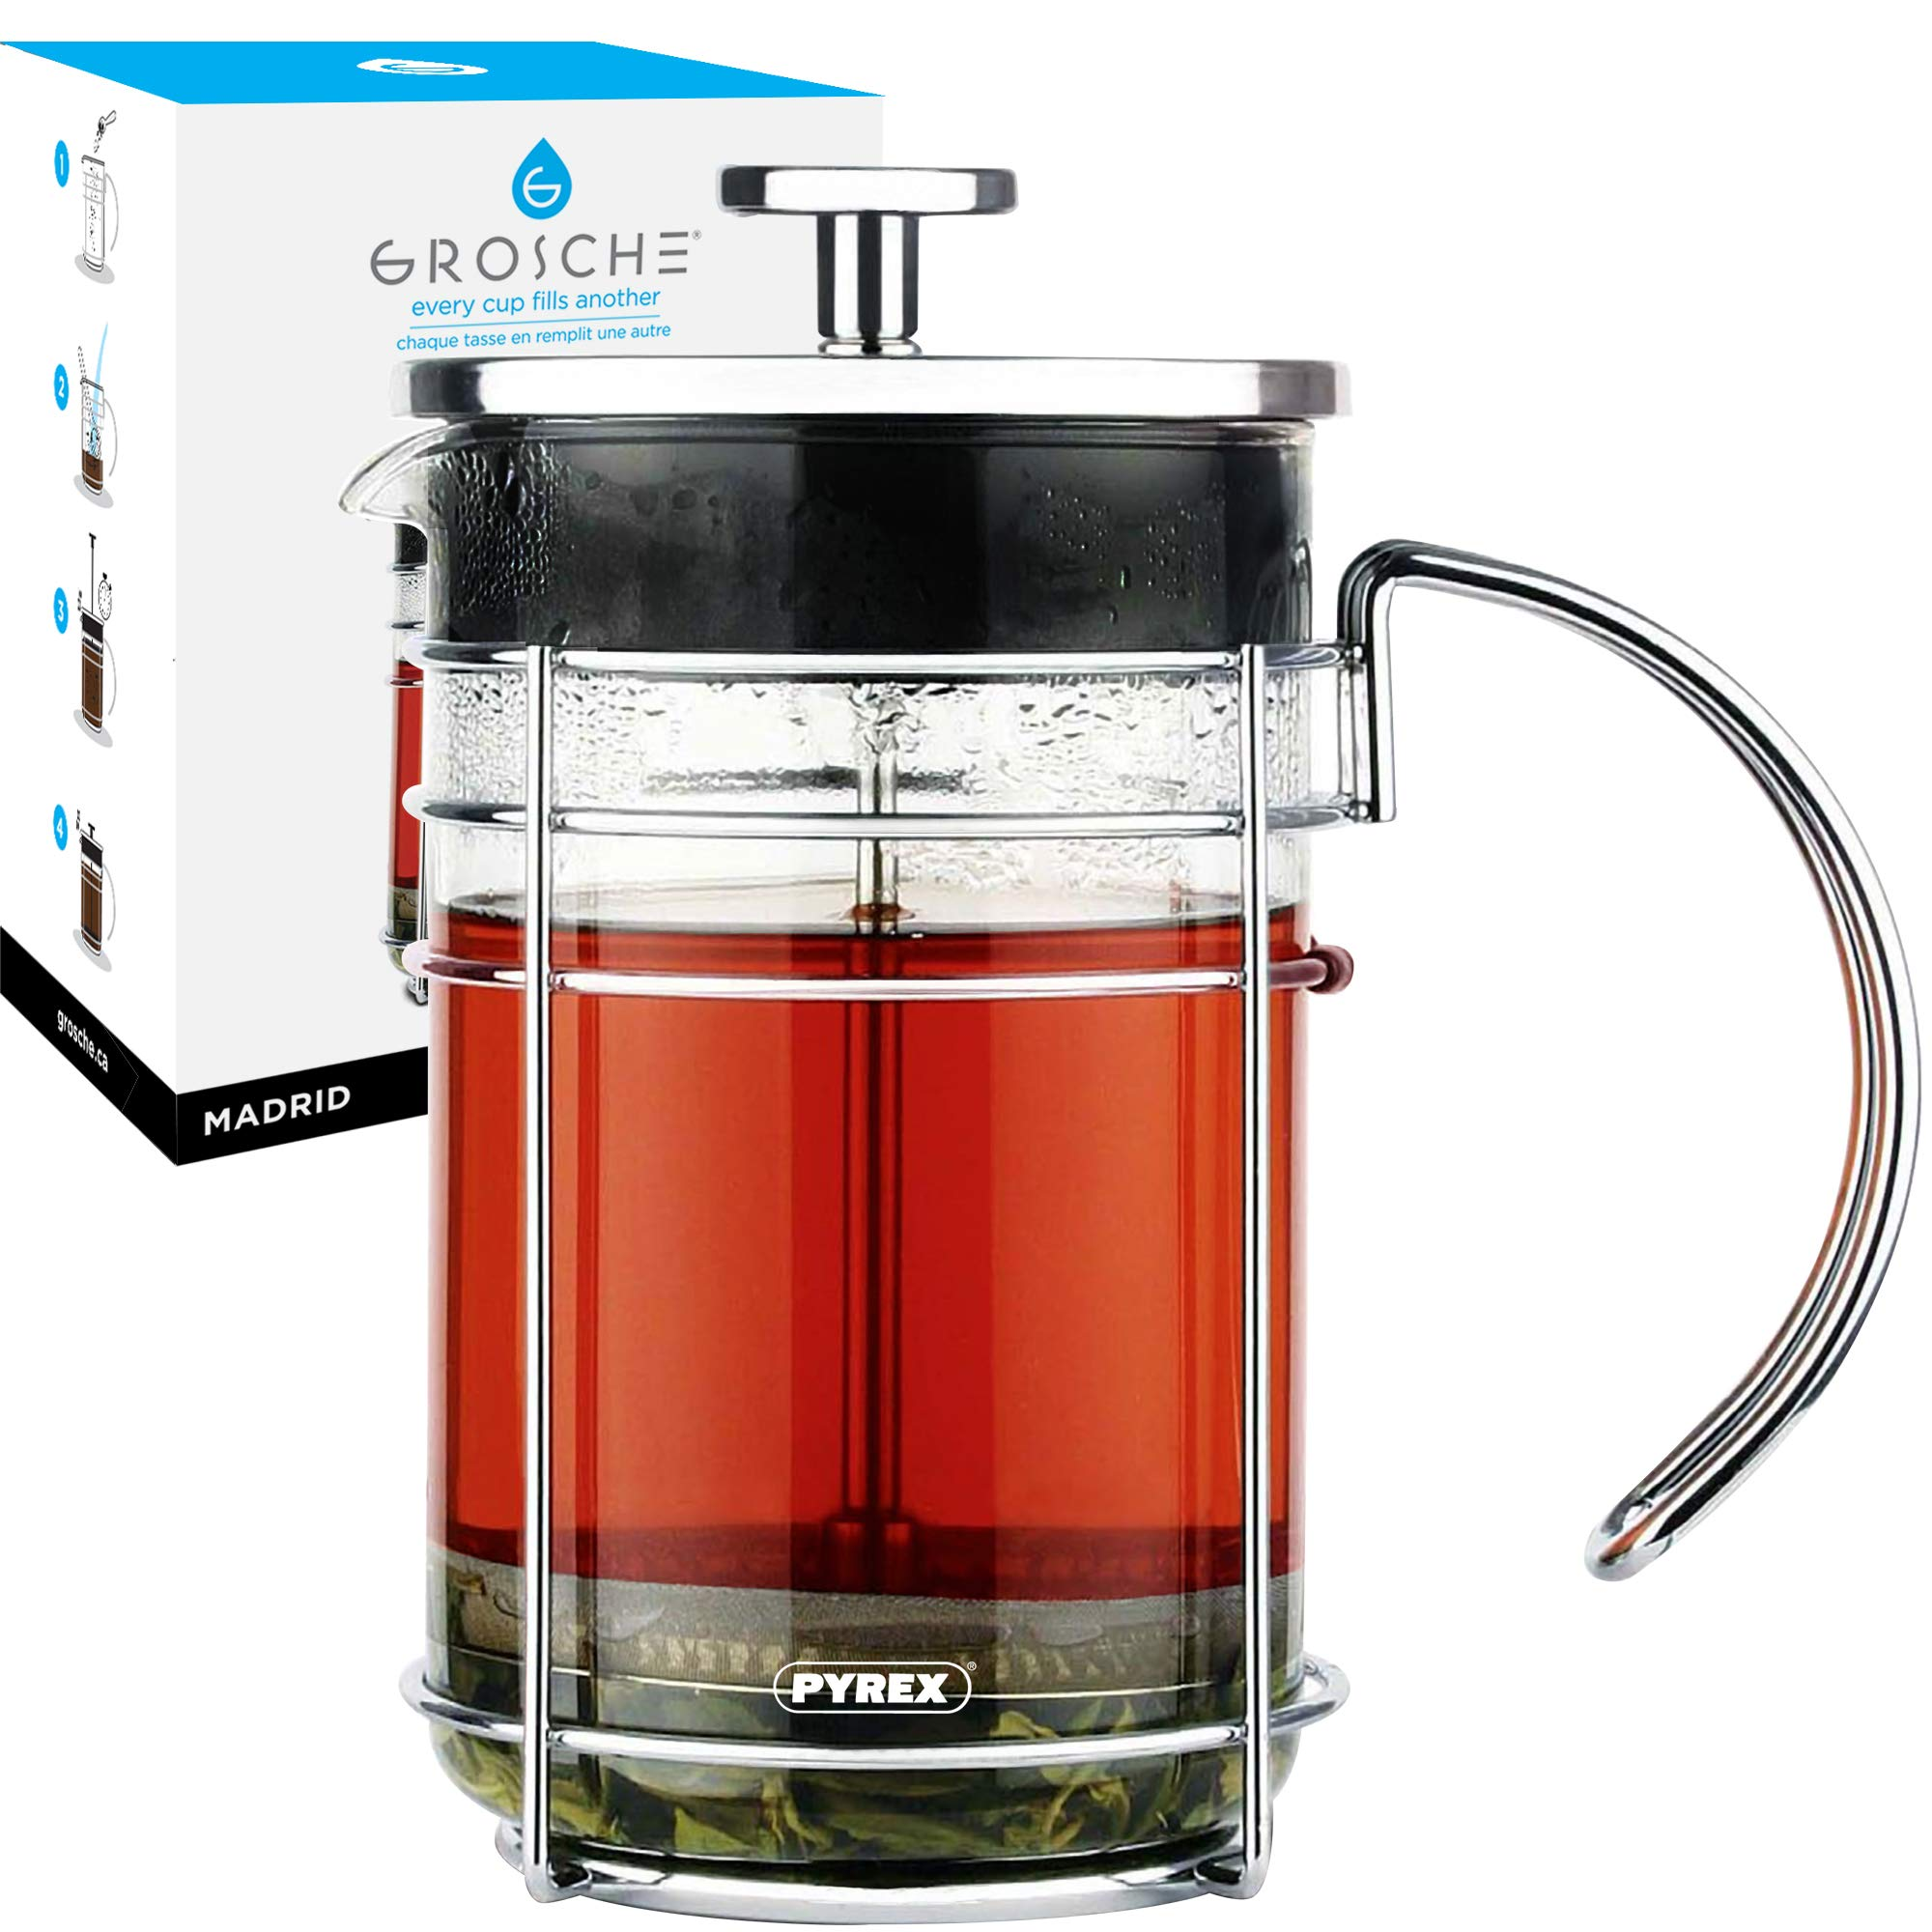 GROSCHE Madrid French Press Coffee Maker and Tea Press, 34 oz / 1000 ml size, Pyrex France Borosilicate Glass Beaker and Premium Stainless Steel Filter and Chrome Finish Coffee Press by GROSCHE